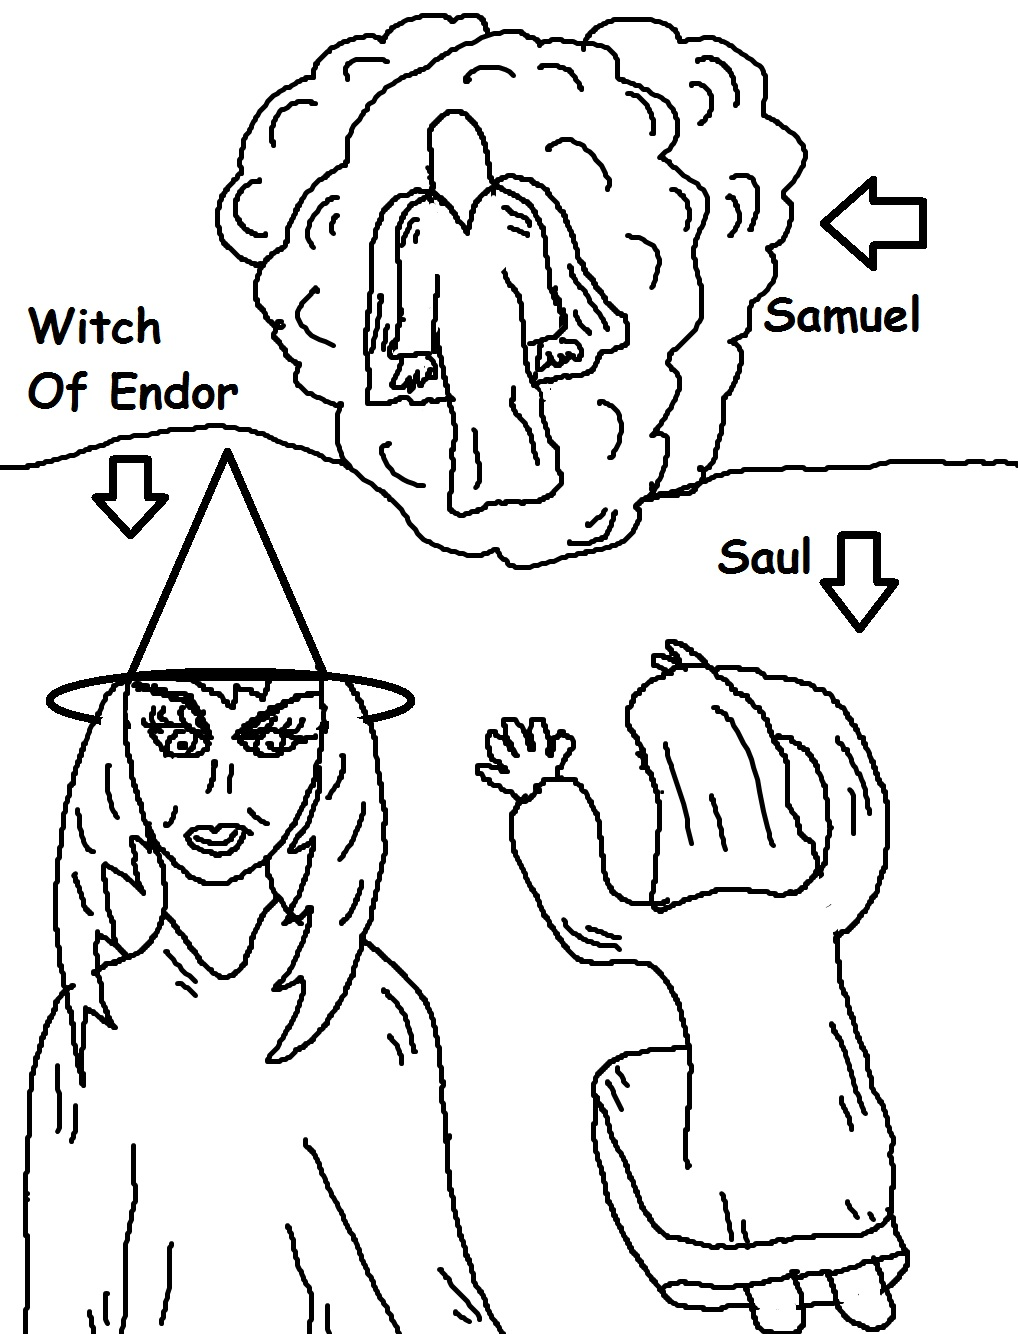 saul conversion story coloring pages - photo#29